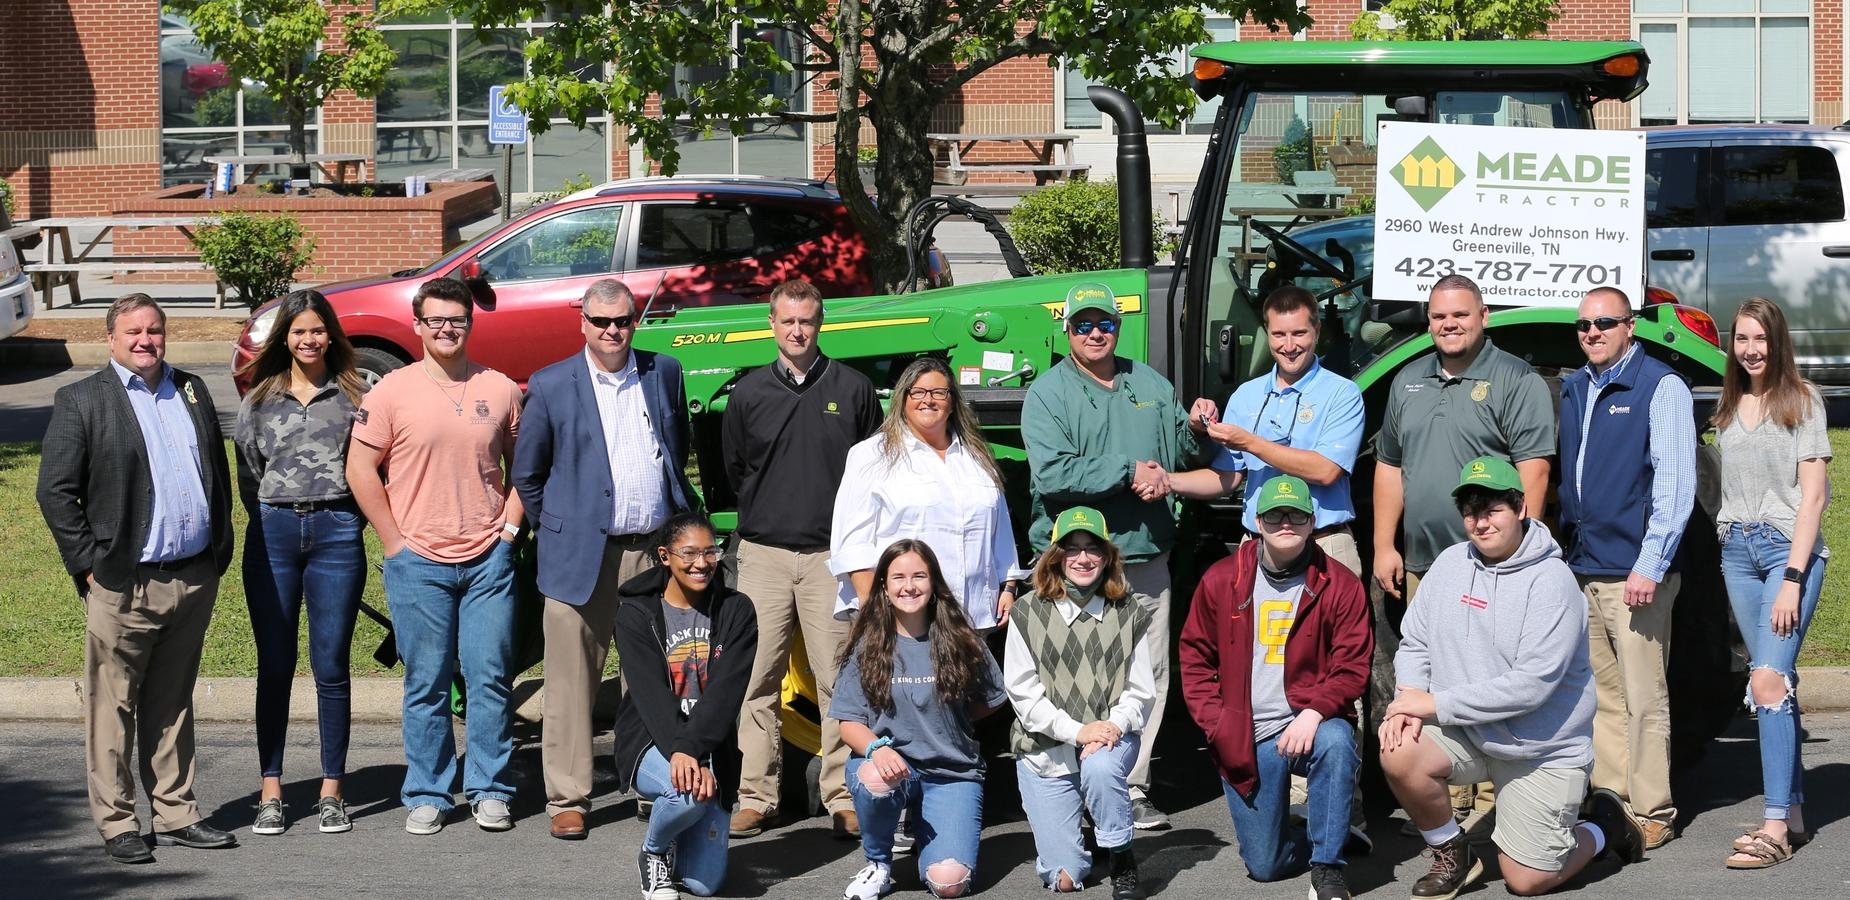 The John Deere Corporation through Meade Tractor of Greeneville provided the Chuckey-Doak FFA chapter with a new 5100 E Utility John Deere tractor. The partnership is to assist the agricultural program with their school farm and livestock facilities. The school will utilize the tractor for one full calendar year on a lease program. Meade tractor will also work with the Agricultural Mechanics program to provide training on equipment maintenance and safety. We our very grateful for Meade and John Deere's partnership to help bolster the agricultural/FFA program at Chuckey-Doak.